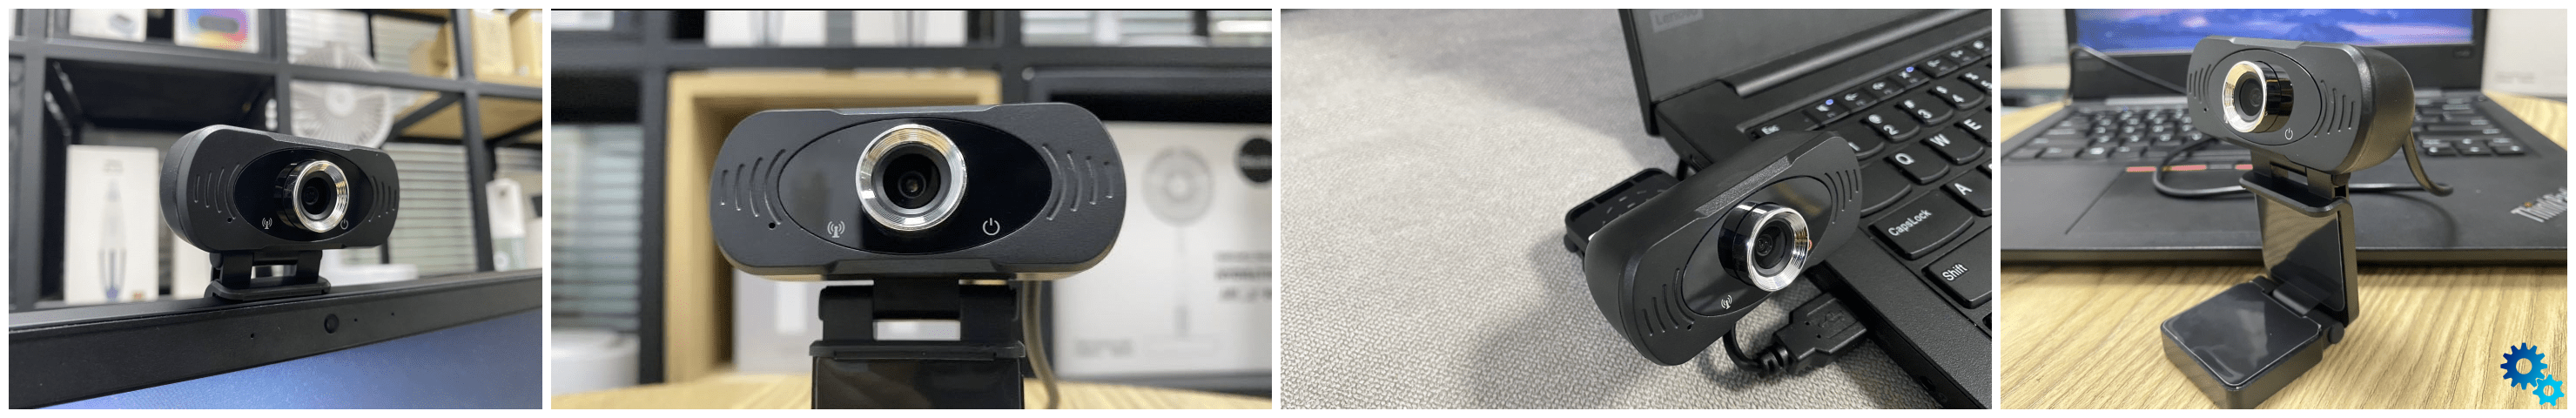 Finding a nice webcam? Xiaomi IMILAB 1080P Webcam is the one for you!